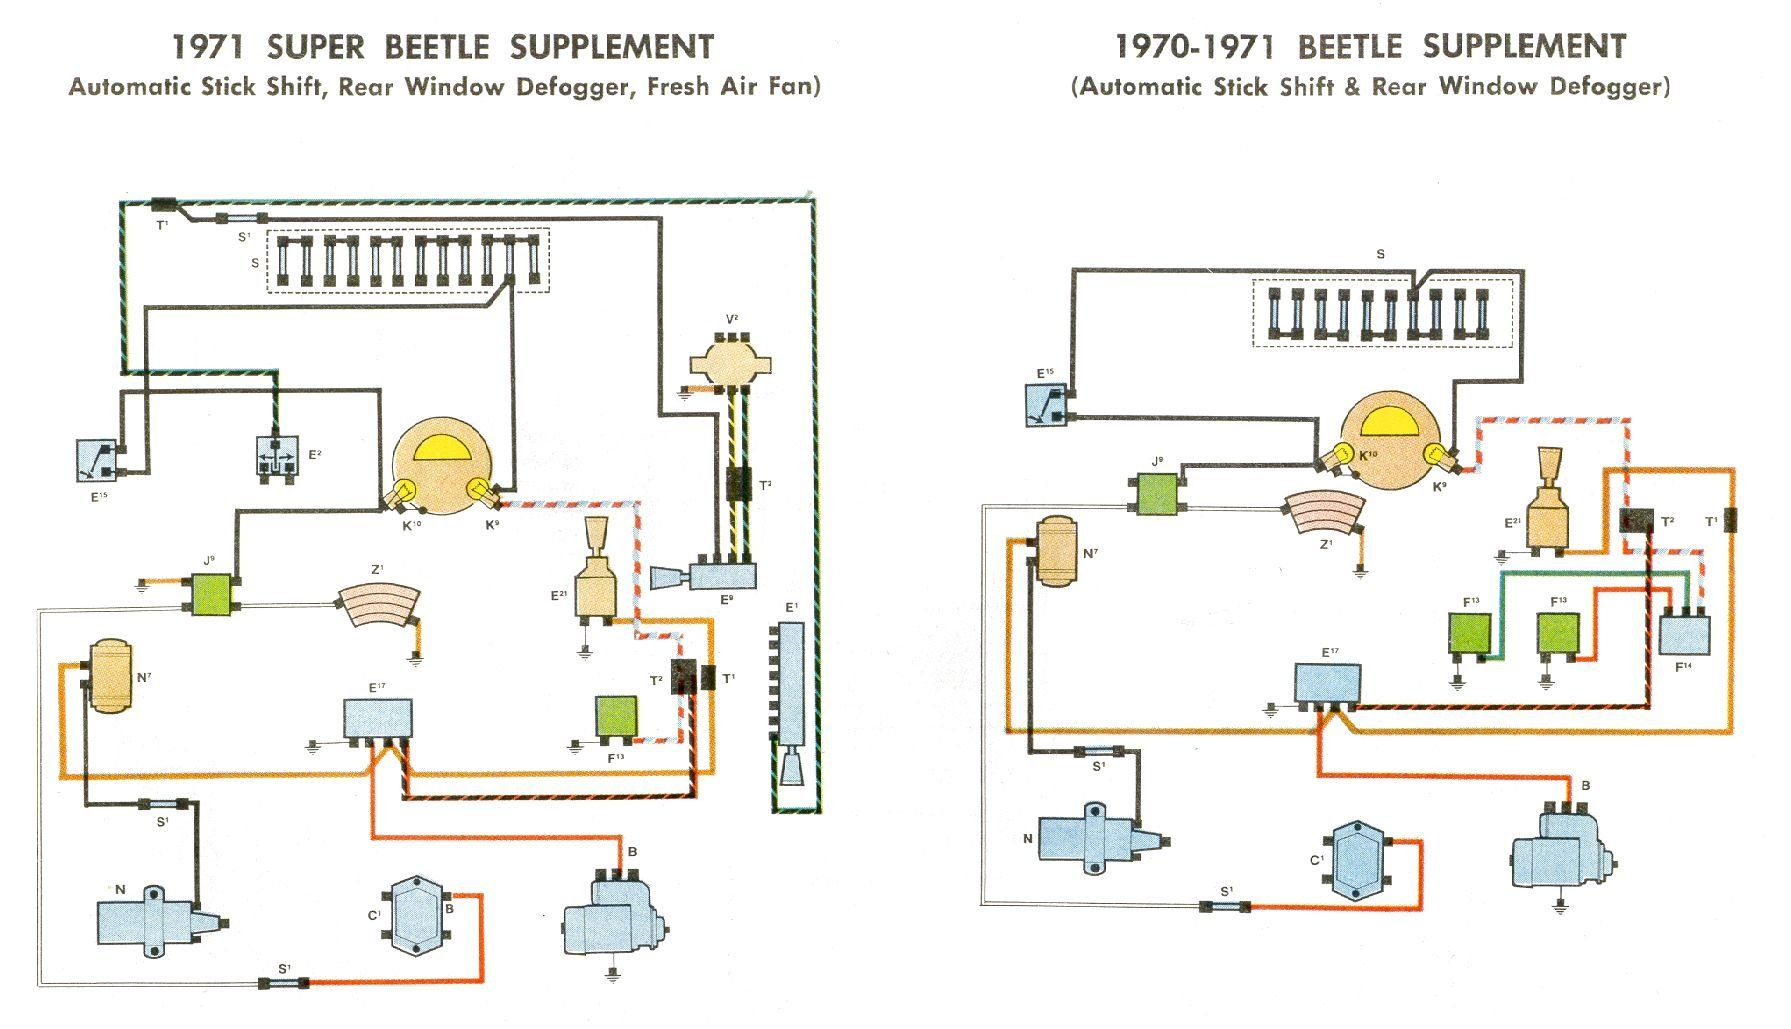 196971 Beetle Wiring Diagram. amdcarleton Diagram